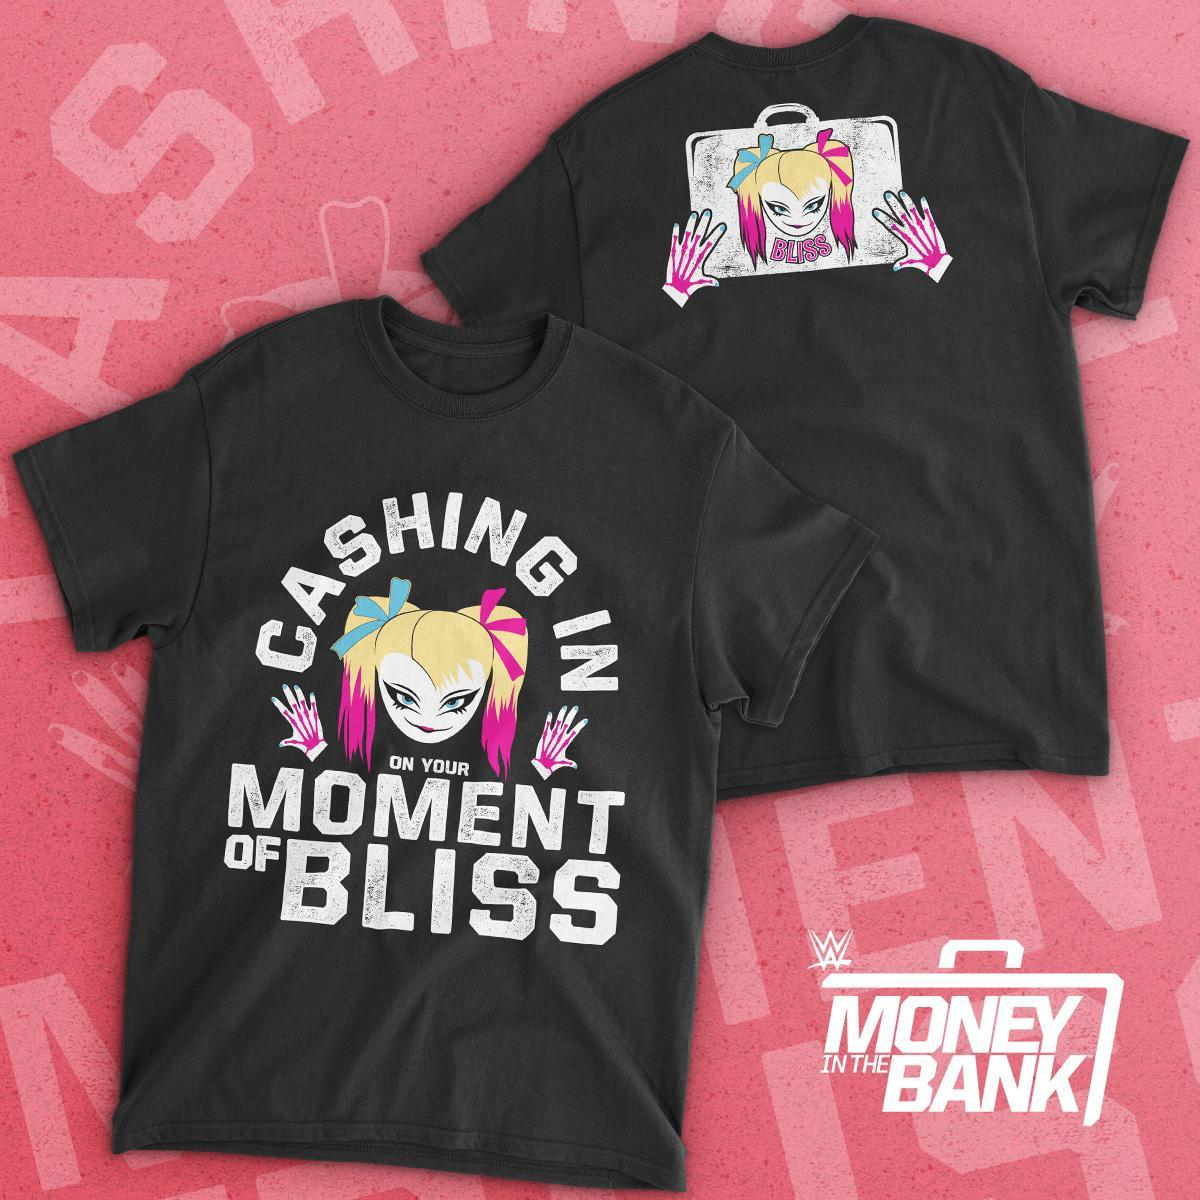 Celebrate the ultimate #MomentOfBliss when @AlexaBliss_WWE successfully cashed in her #mitb contract & became #Raw womens champion! New t-shirt now available at #WWEShop. #WWE #AlexaBliss bit.ly/2MPgPvk